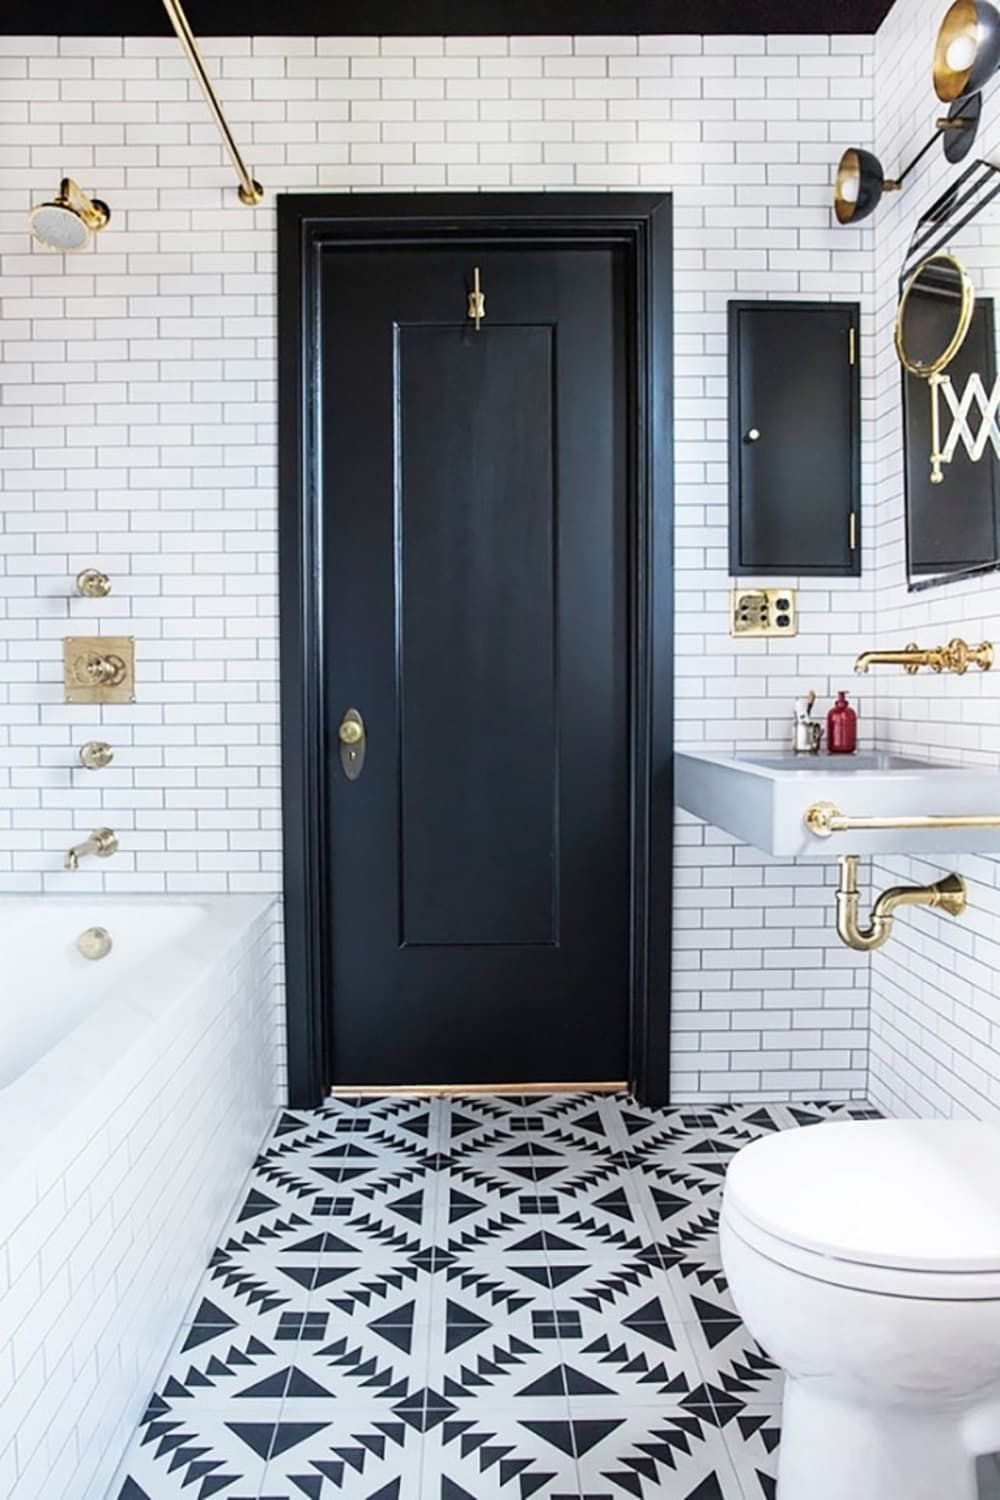 15 Small Bathrooms That Are Big On Style Trendy Bathroom Bathroom Design Small Bathroom